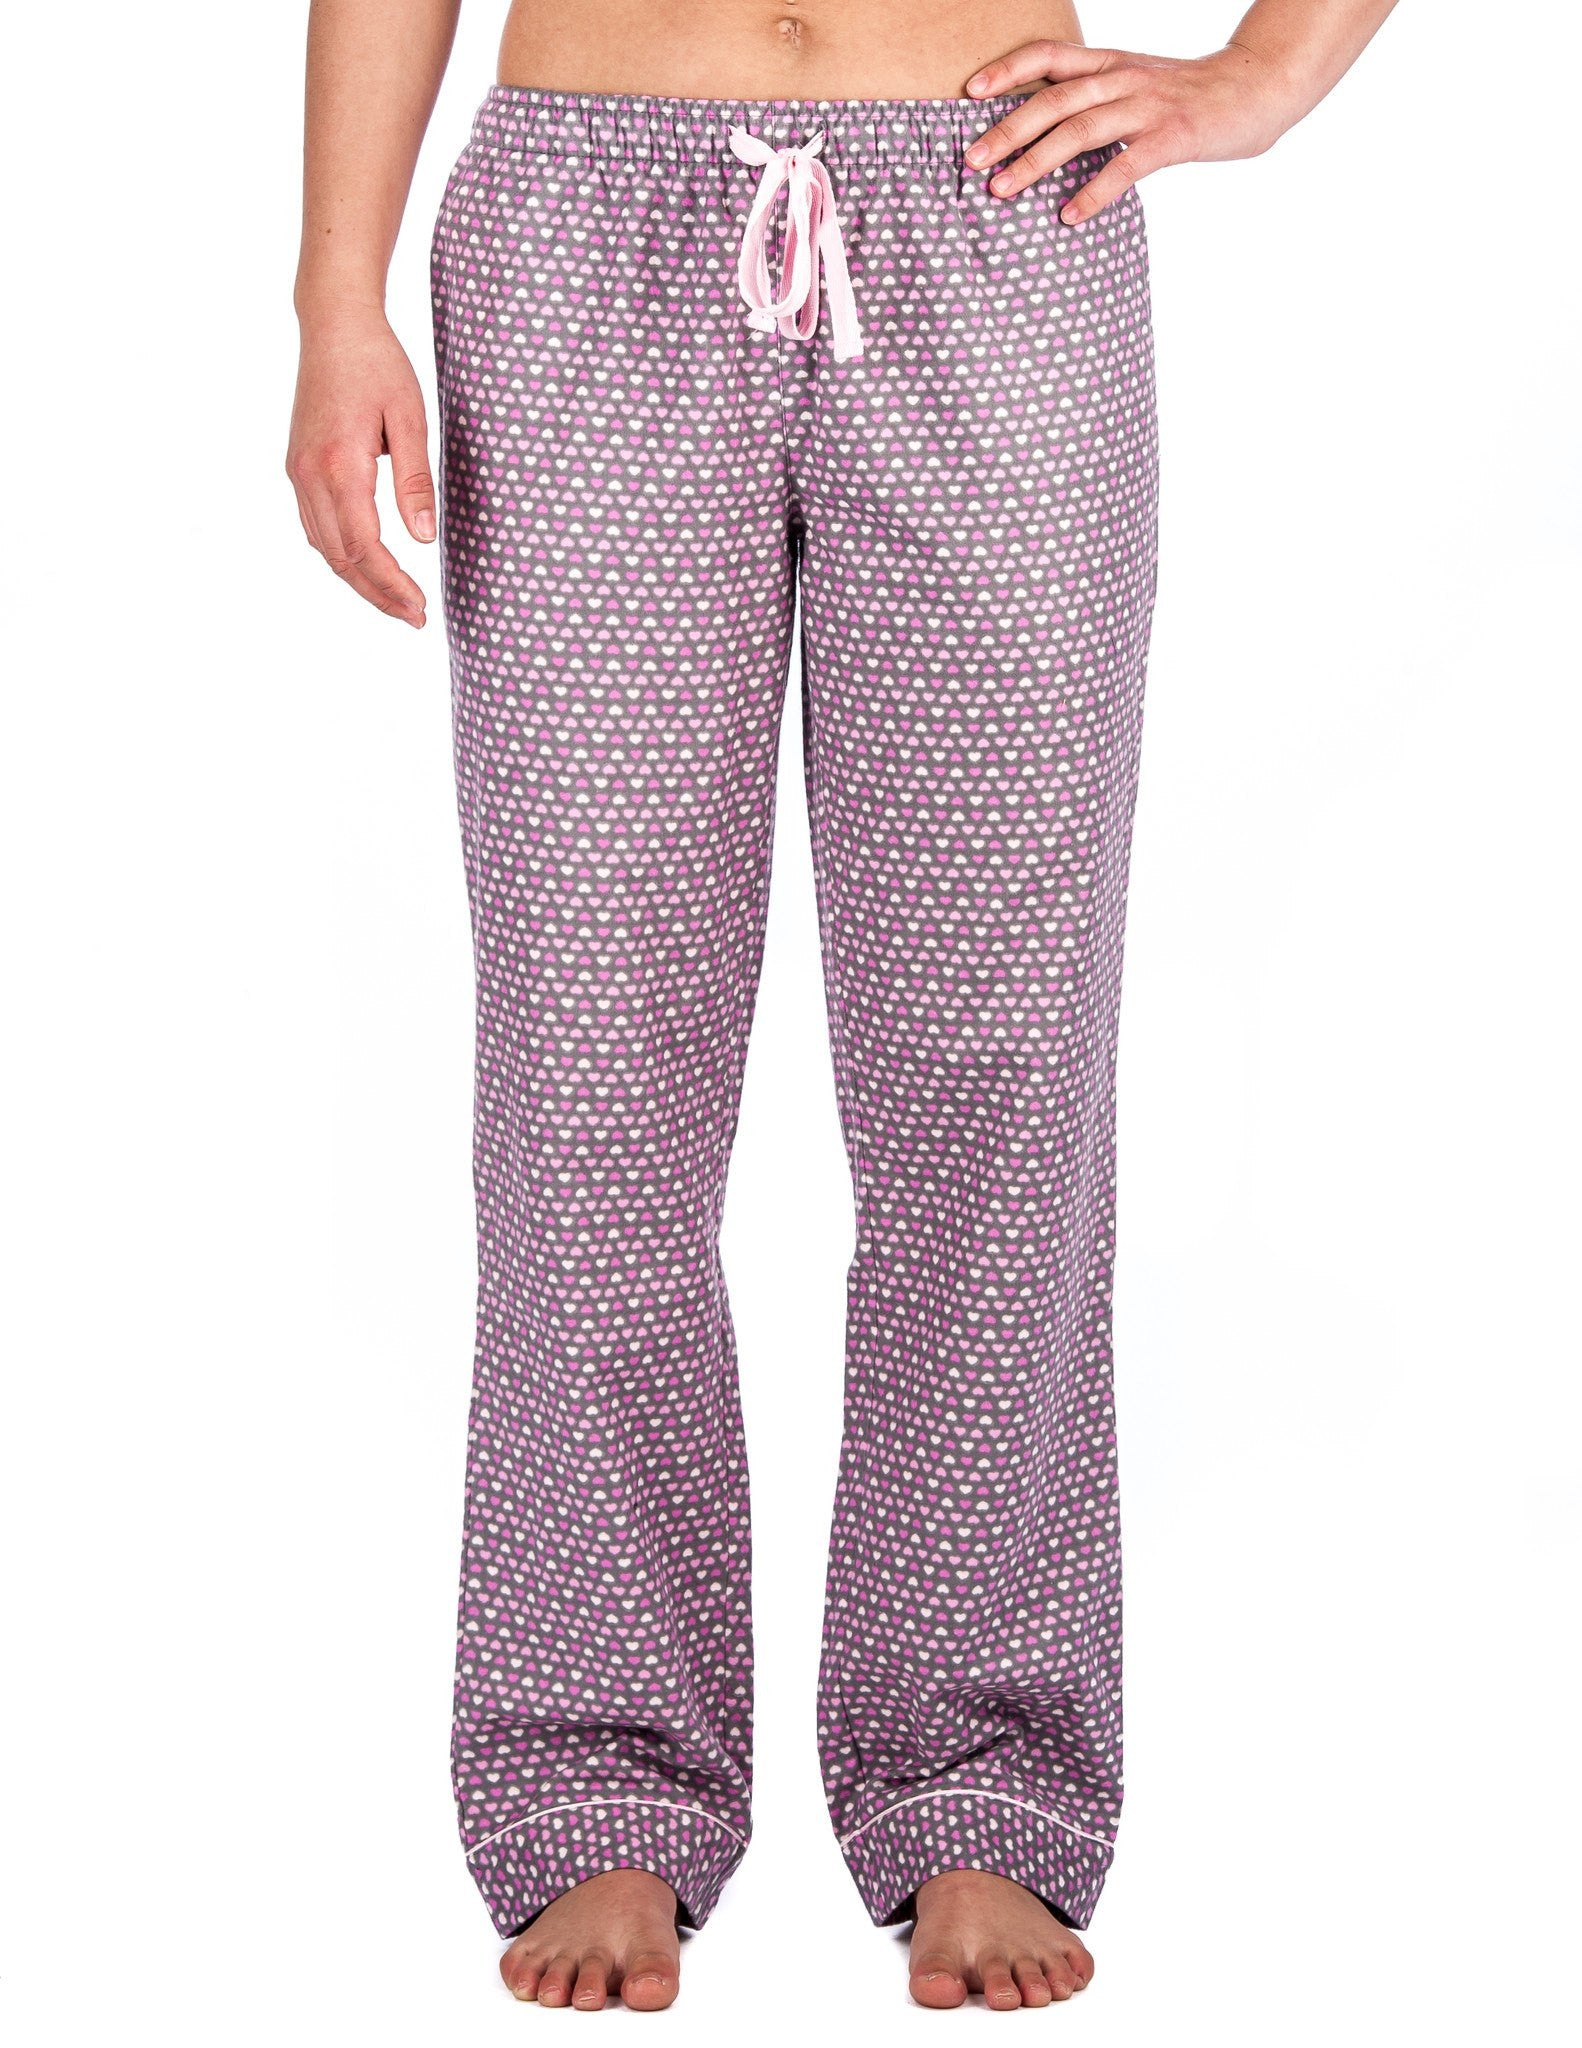 Womens 100% Cotton Flannel Lounge Pants - Relaxed Fit